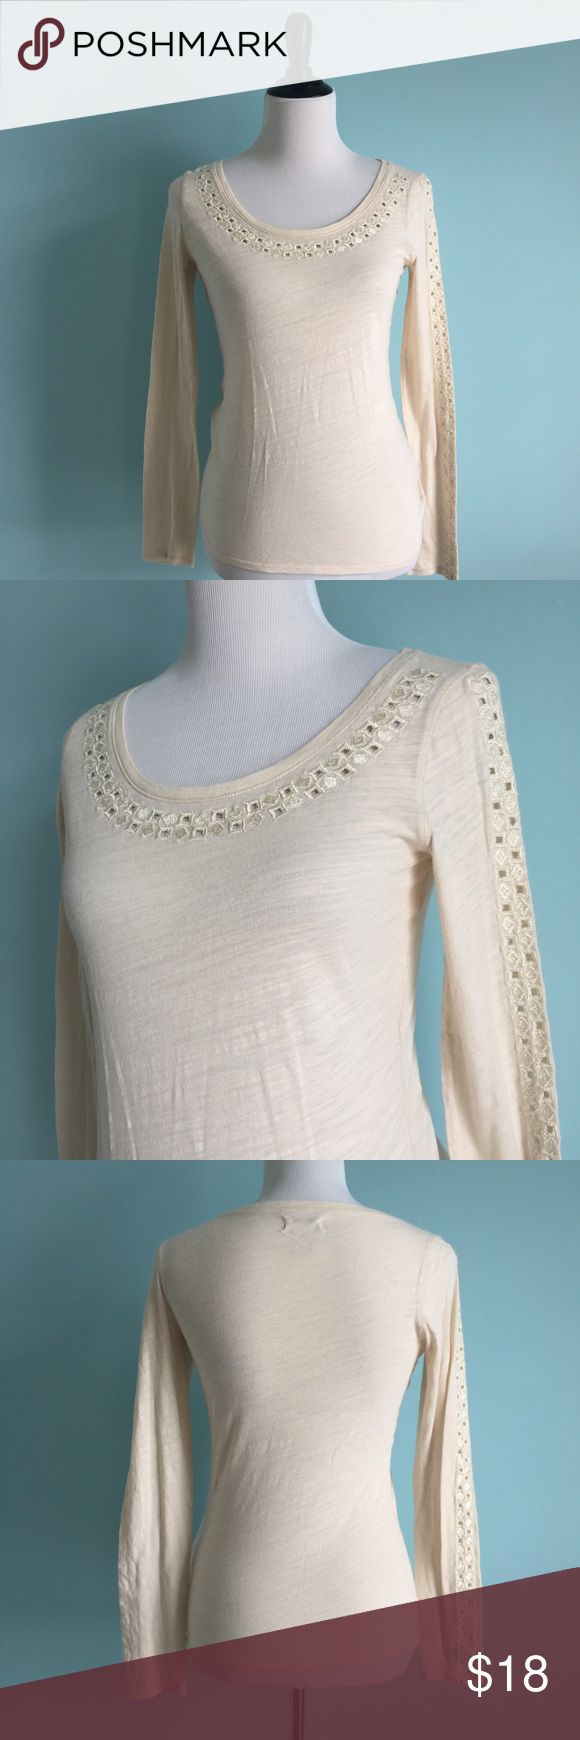 Lucky Brand Cream Embroidered Long-Sleeved Top Cute and comfortable Cream long-sleeved tee with embroidering on neckline and sleeves. Scoop neck. Size extra small by Lucky Brand. Worn only a couple times, in good condition. Lucky Brand Tops Tees - Long Sleeve